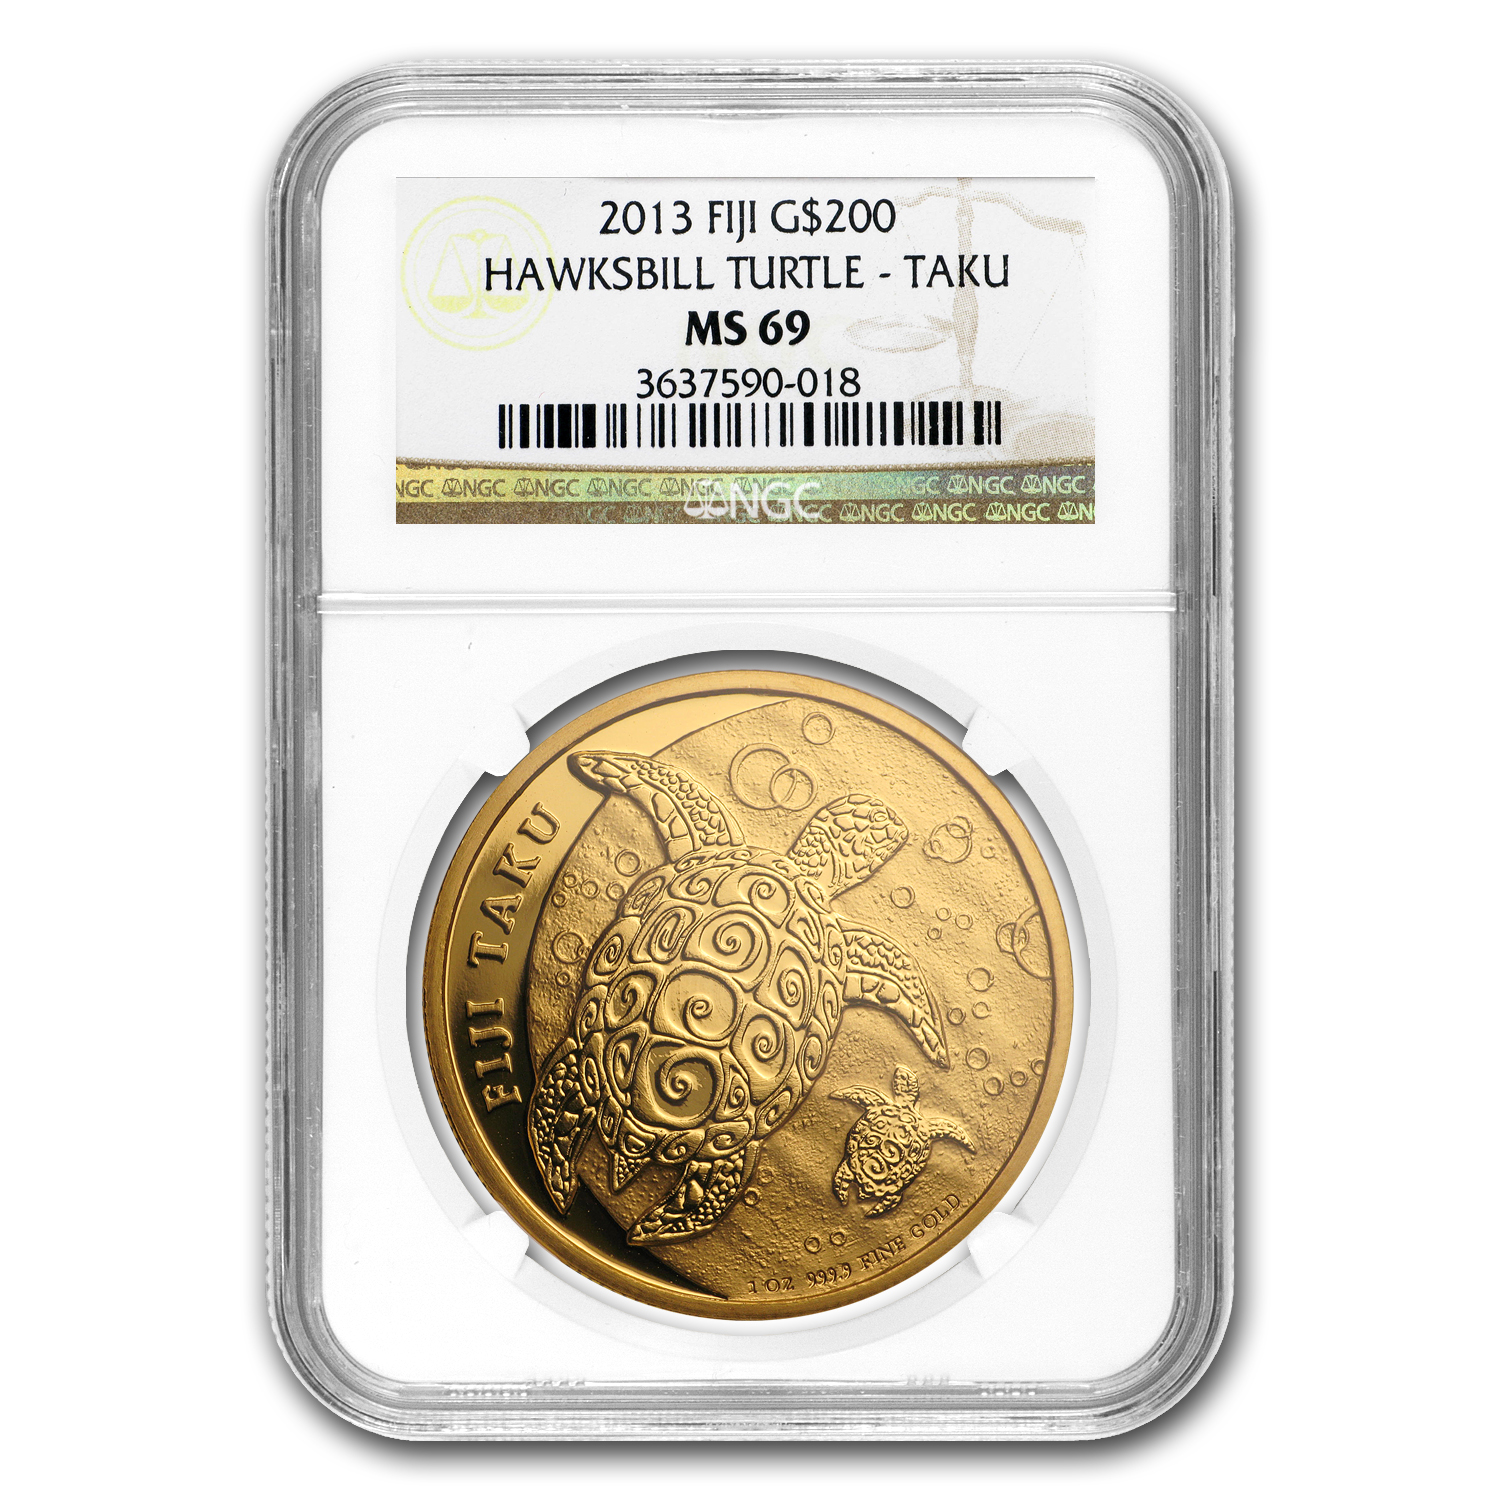 2013 Fiji 1 oz Gold $200 Taku MS-69 NGC